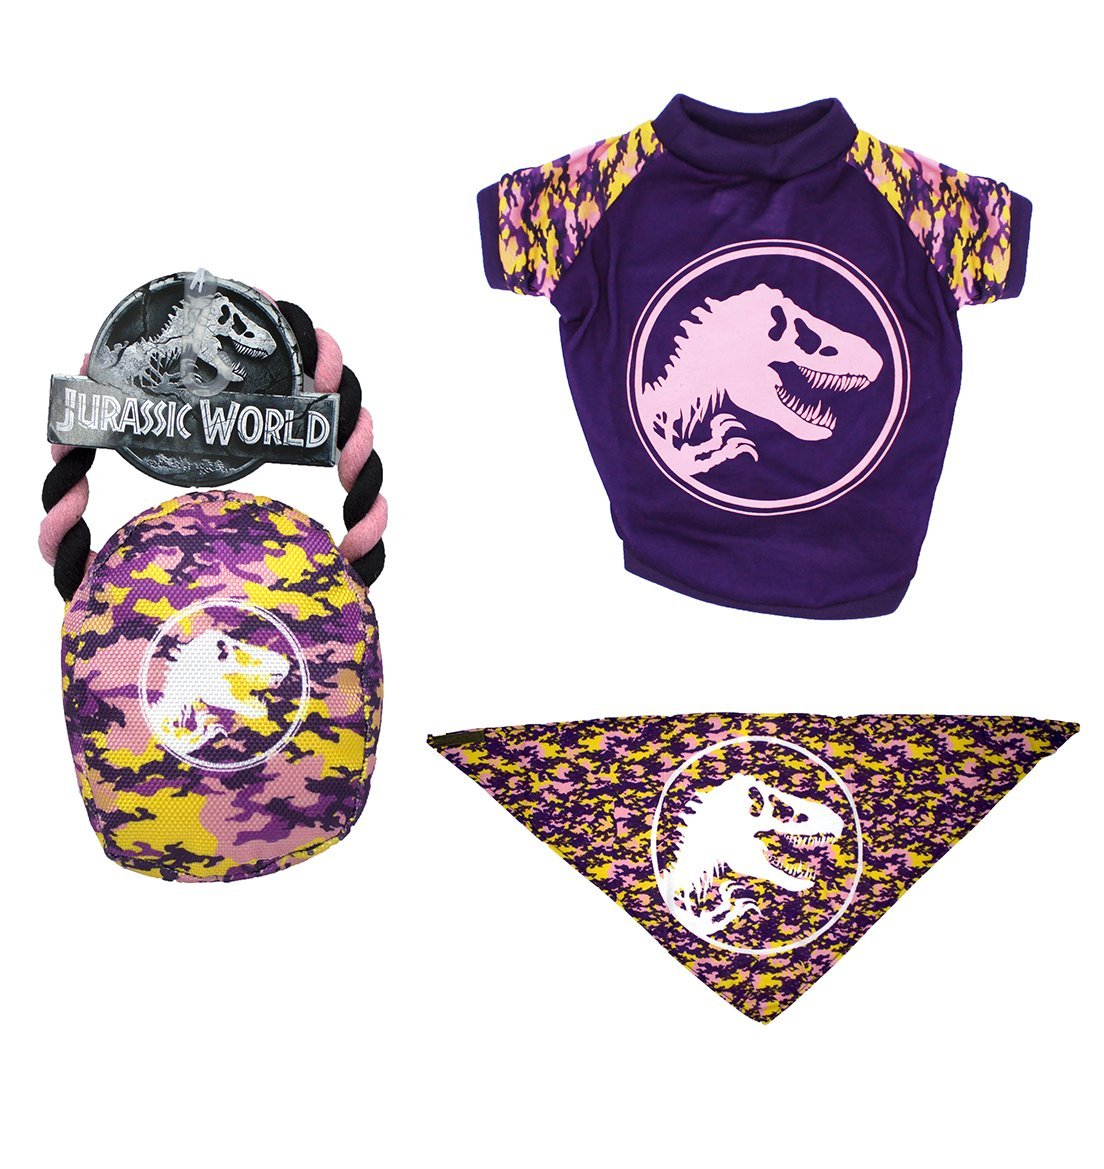 Jurassic World Logo Bandana, Rope Pull Toy, and Logo T-Shirt in Size Small | Tee, Toy, and Bandana Set For Small Dogs, Small